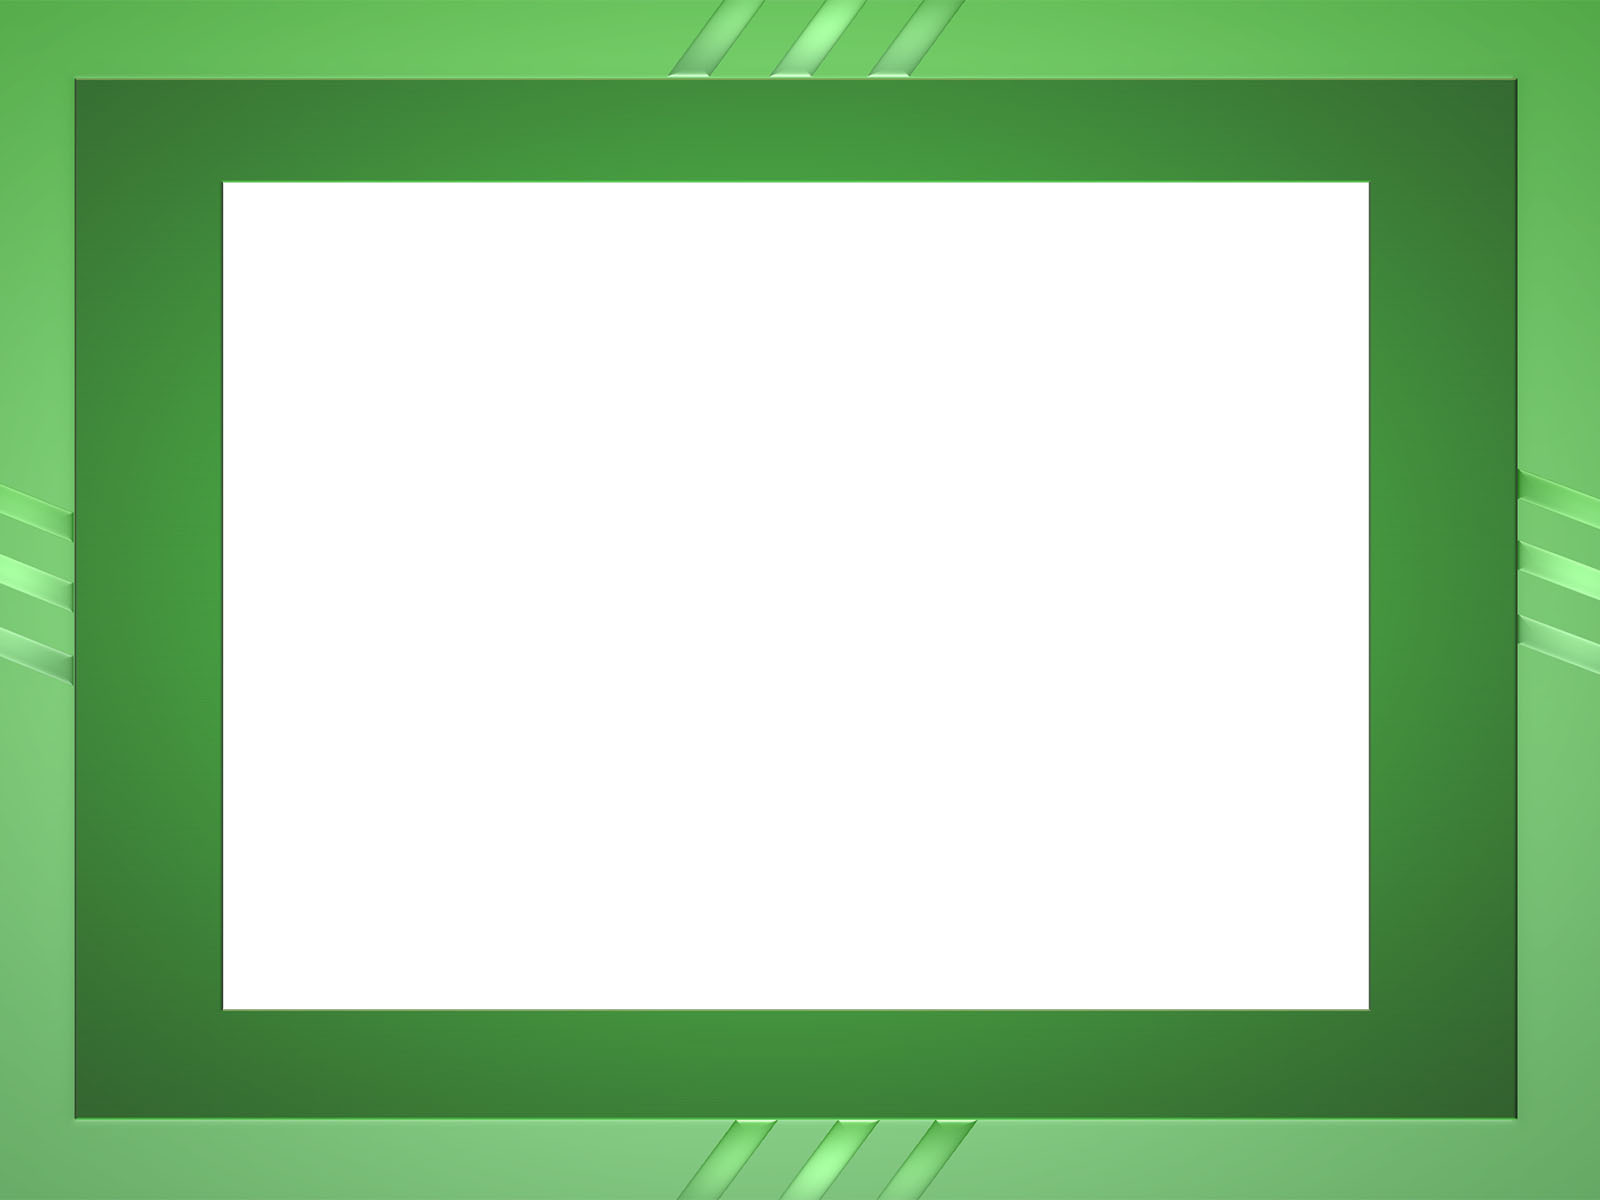 green frame backgrounds border   frames  green templates free ppt backgrounds and powerpoint religious christmas clipart about giving religious christmas clipart images